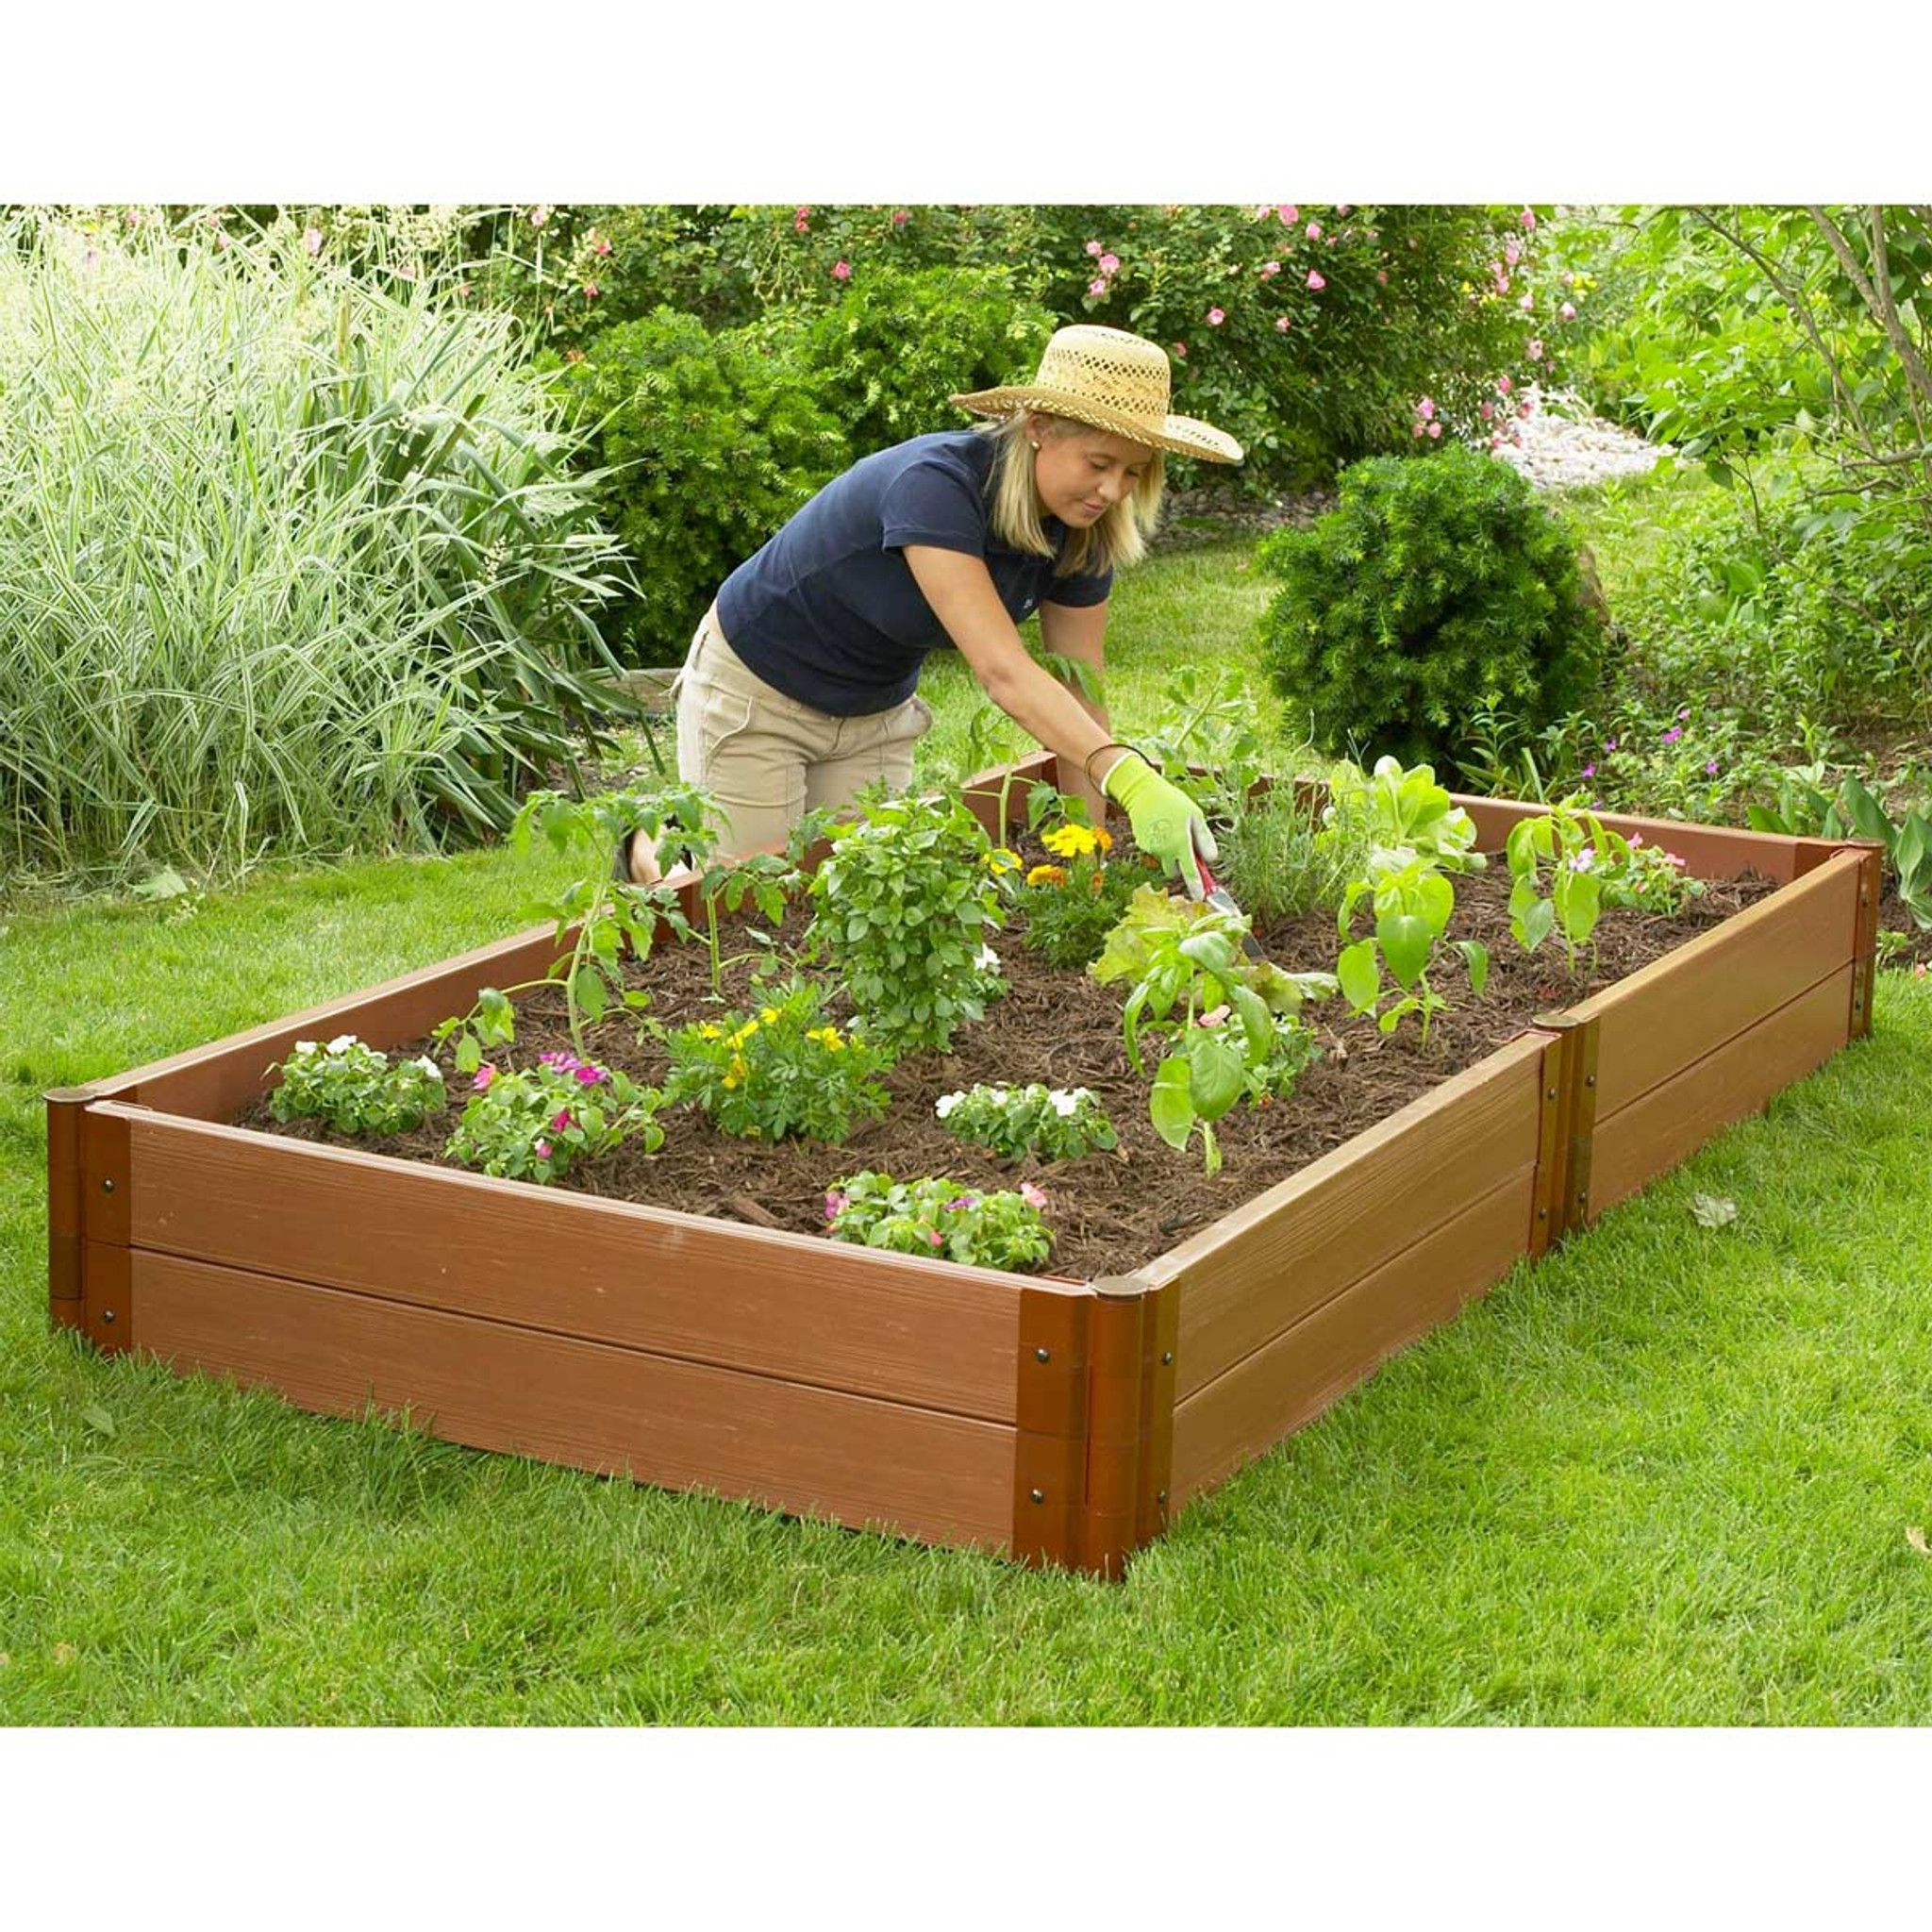 Gardening Beds: Composite Raised Garden Bed - 4' X 8'